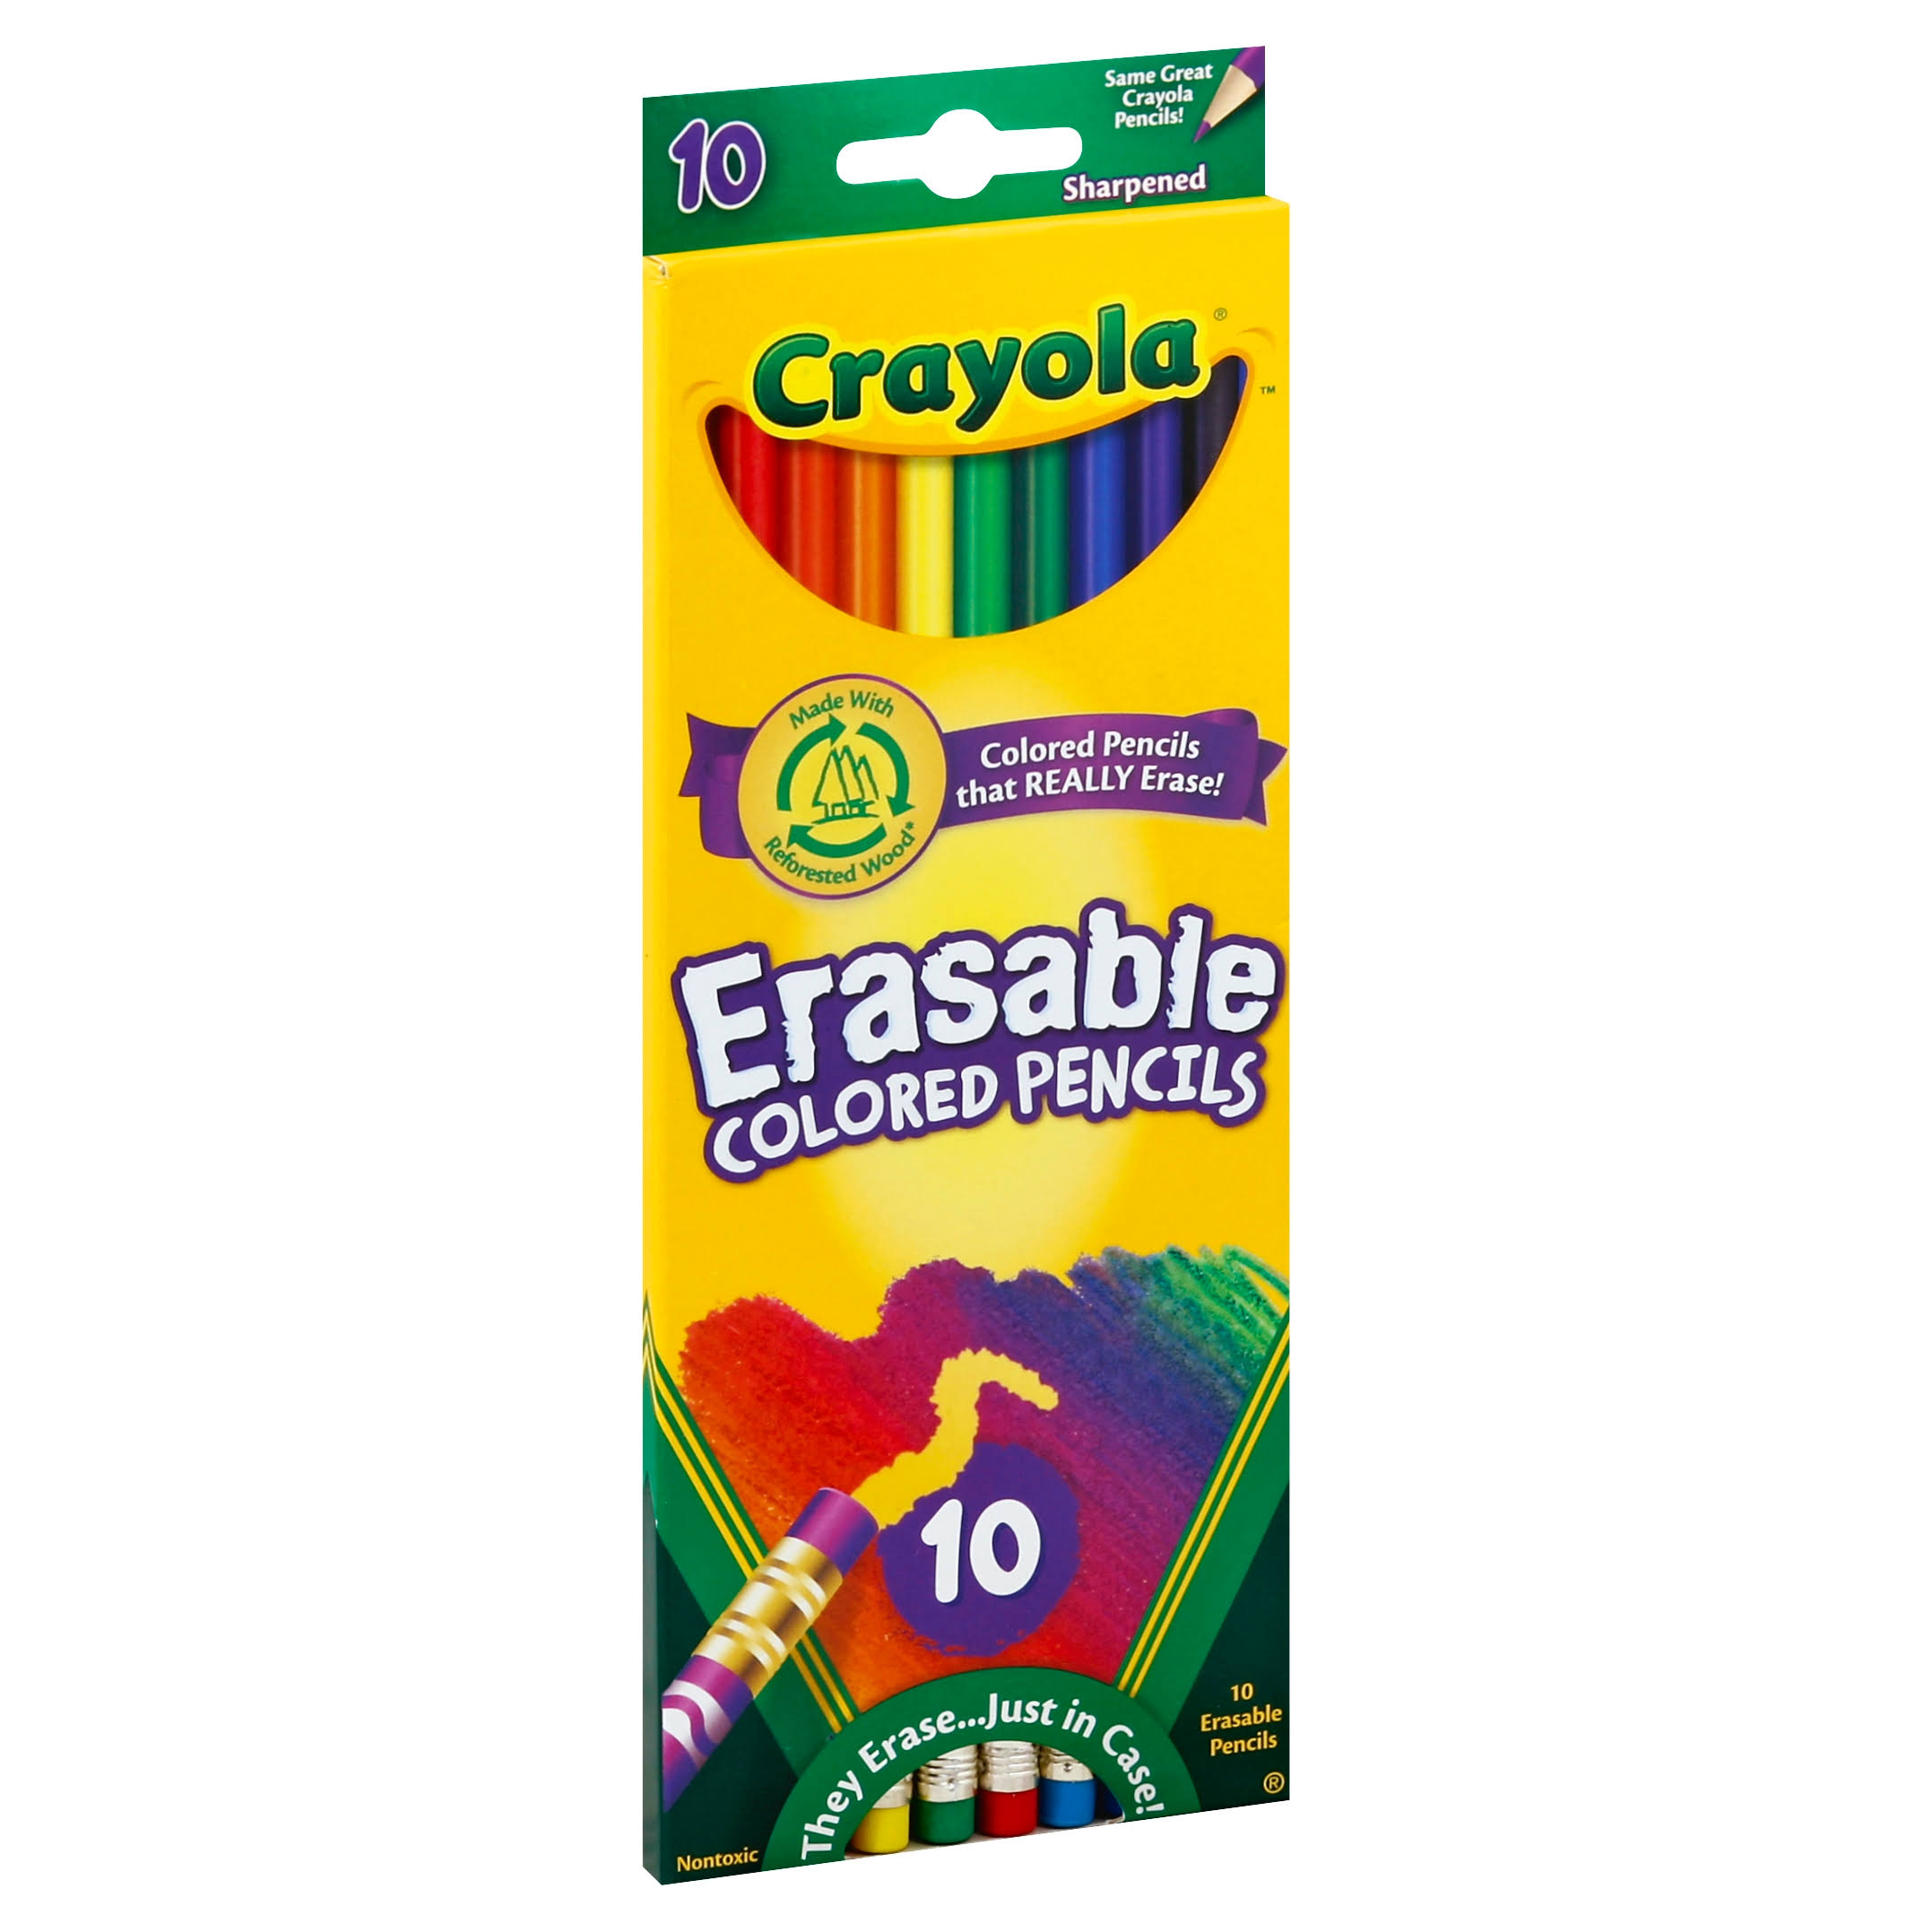 Crayola Erasable Colored Pencils - 10 Colours